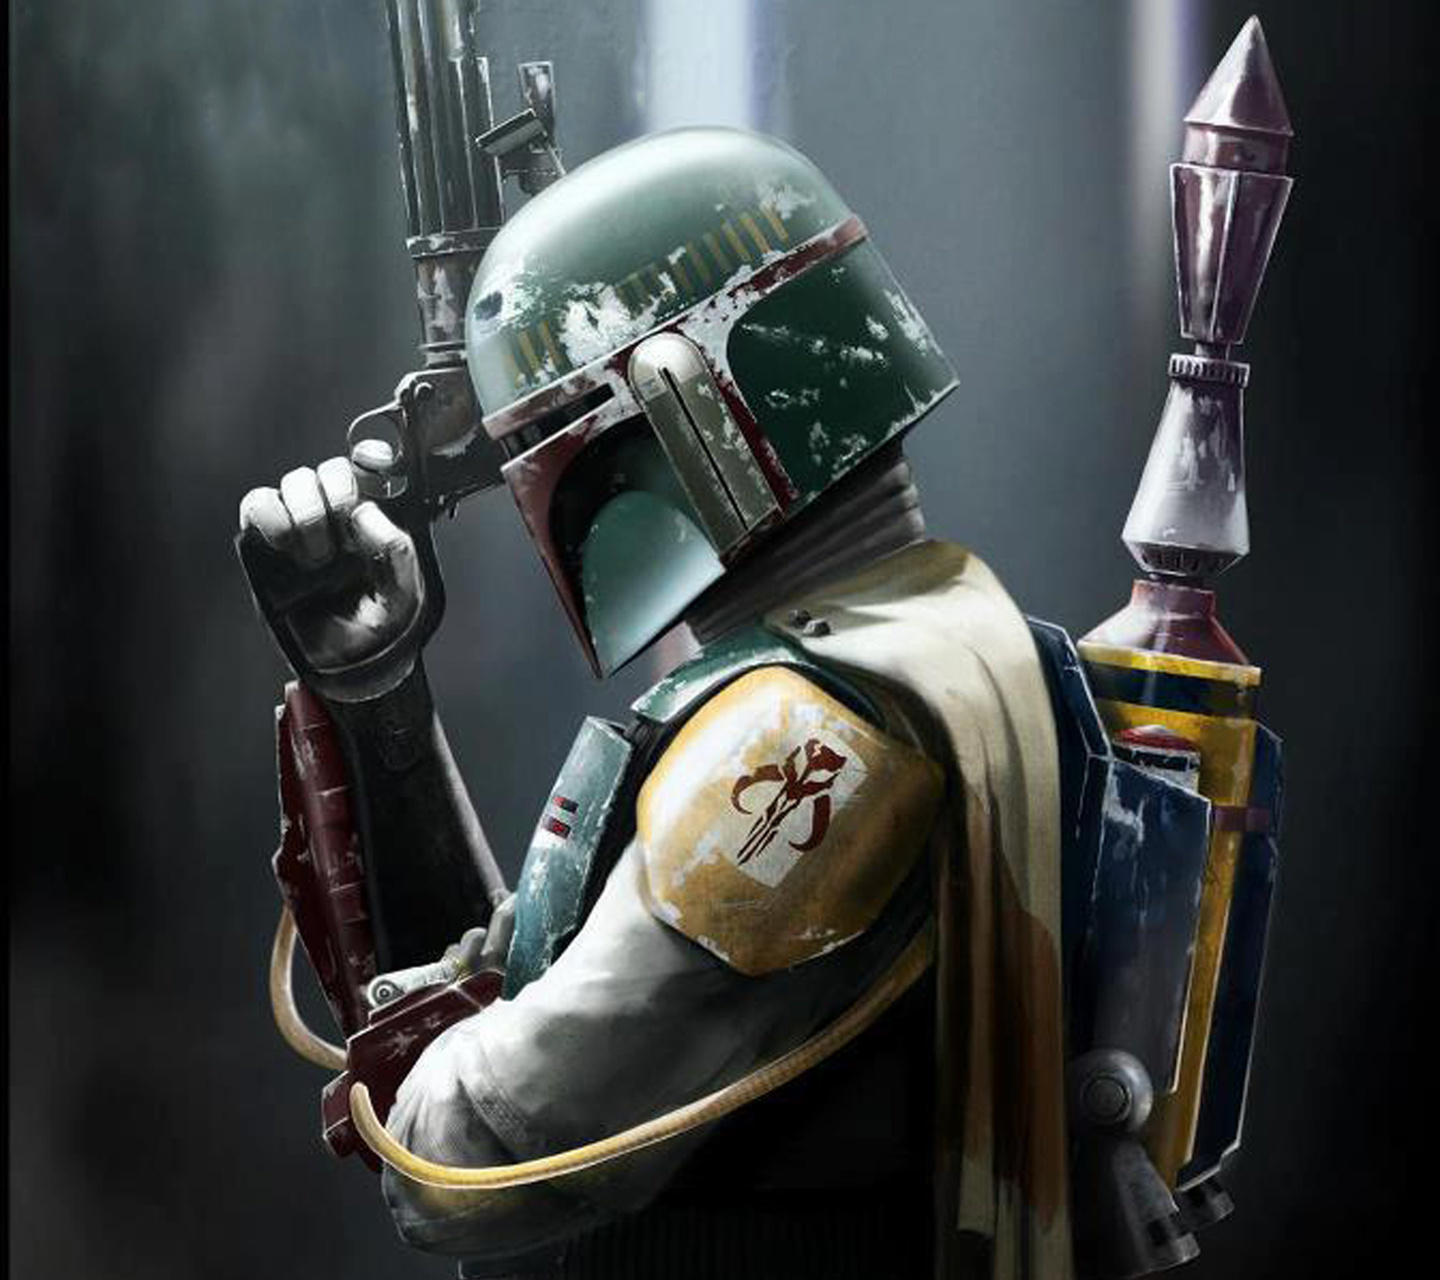 star wars boba fett wallpaper wallpapersafari. Black Bedroom Furniture Sets. Home Design Ideas